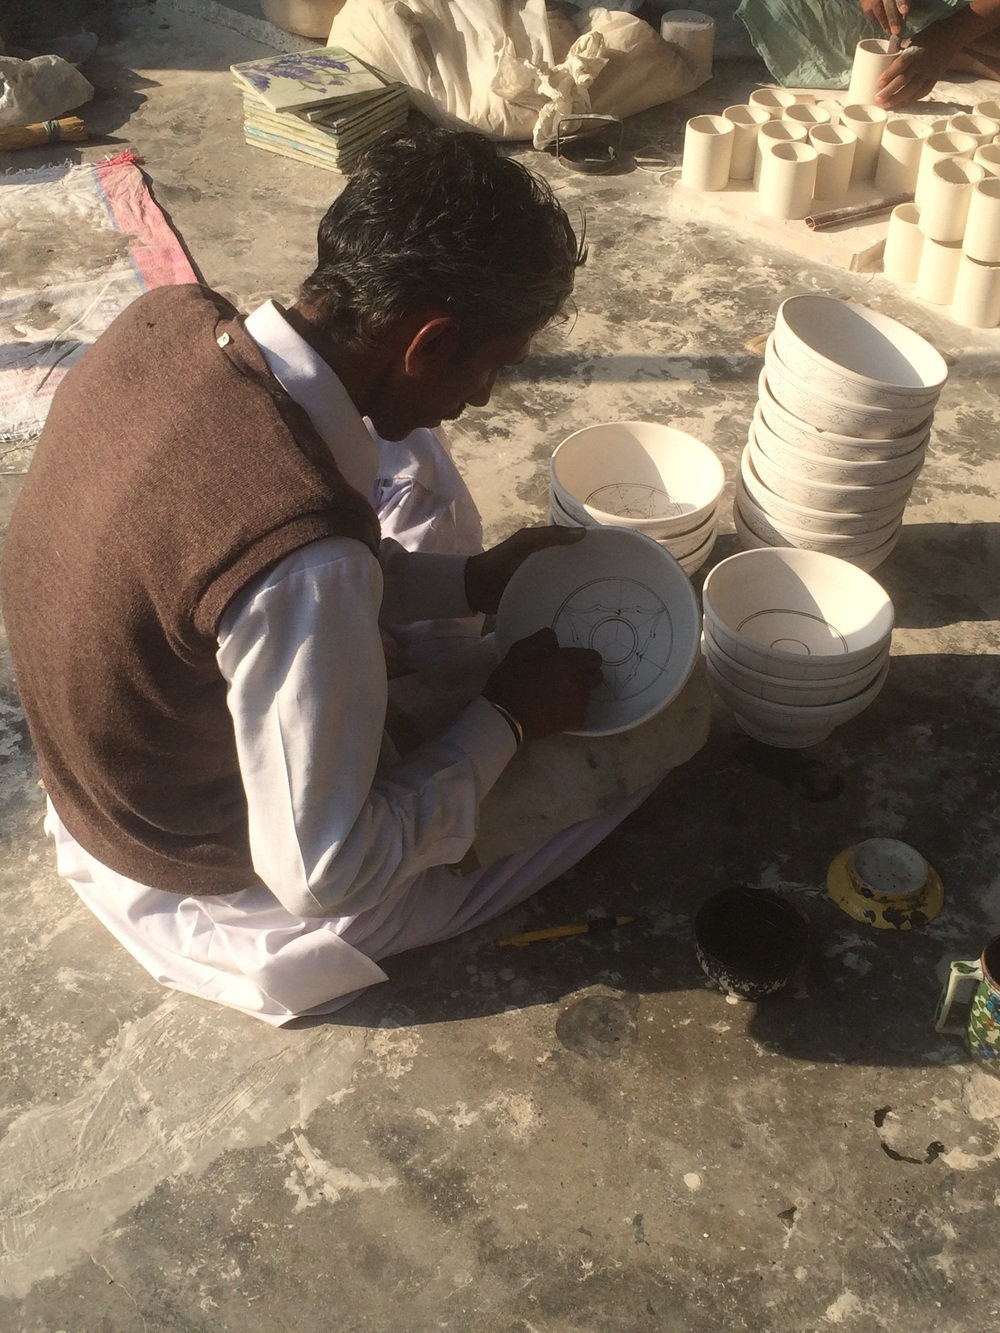 Hand drawing the designs on the pottery.